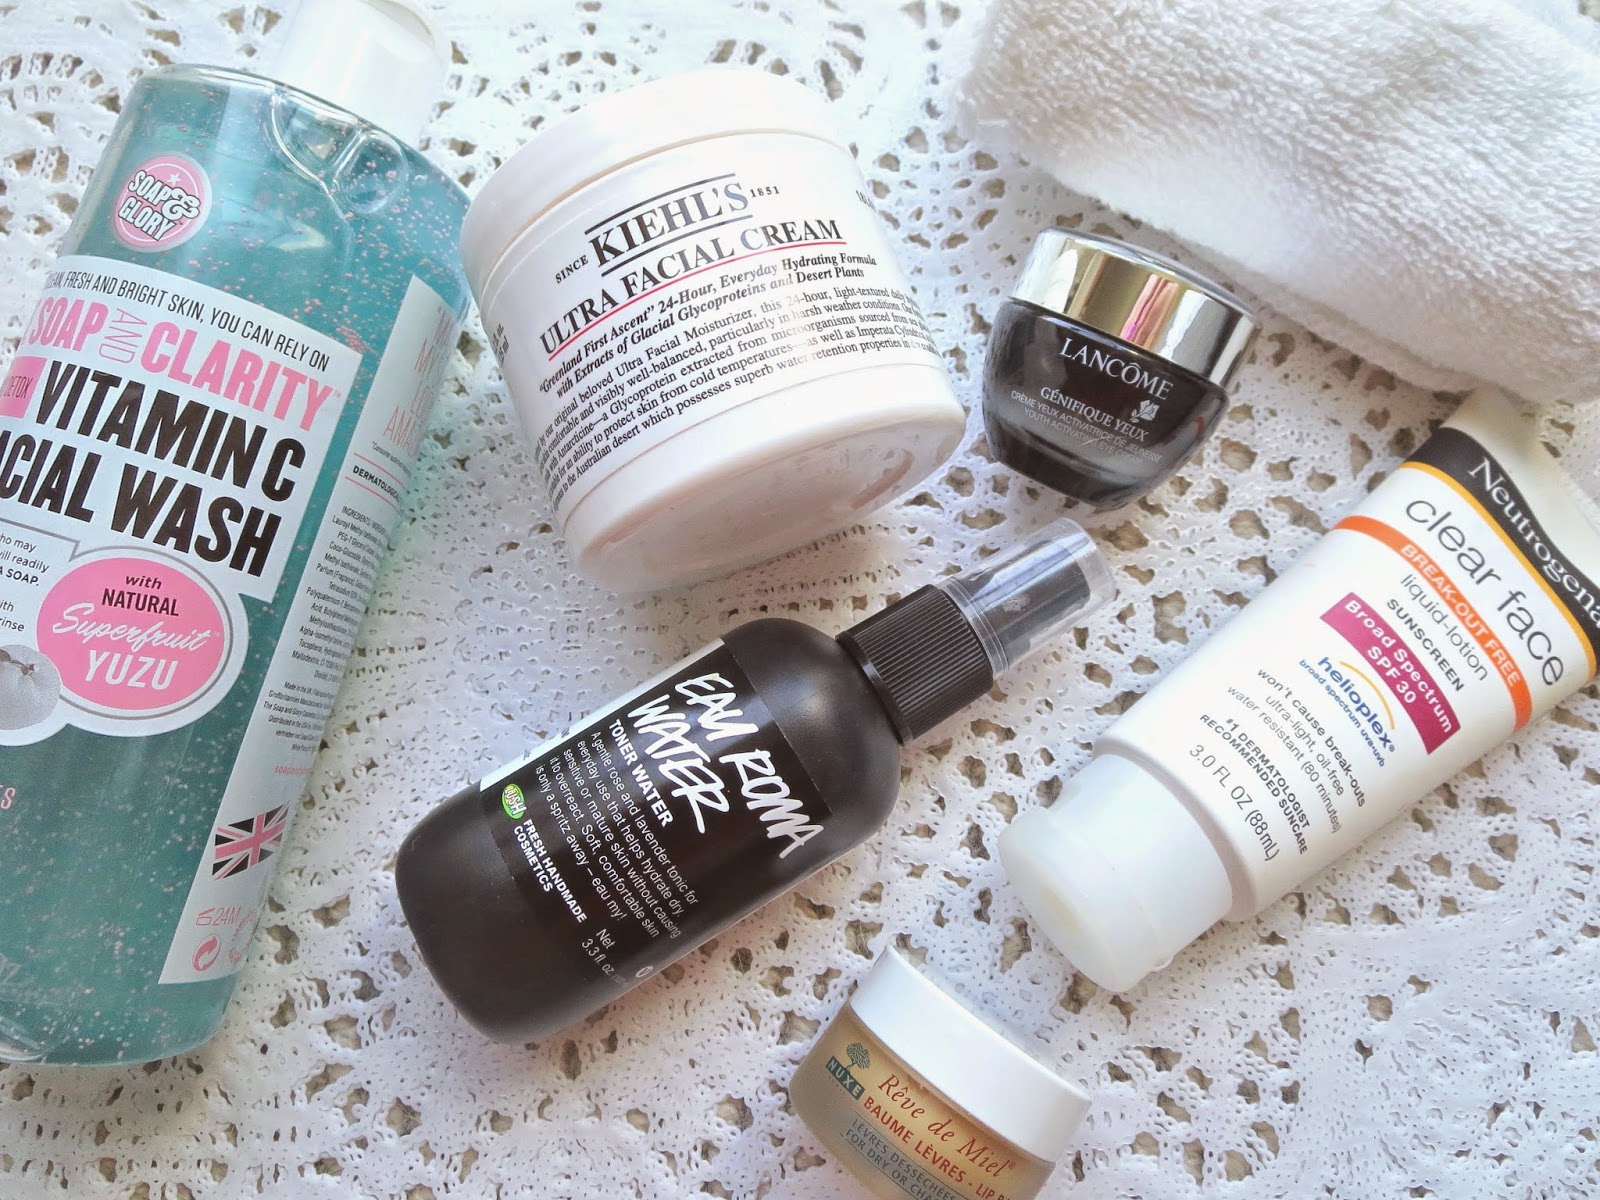 a picture of products for combination dry skin Morning Skincare Routine (Soap&Glory Vitamin C Facial wash, Kiehl's Ultra Facial Cream, Lush Eau Roma Water, Neutrogena Clear Face SPF 30, Lancome Genefique eye cream)